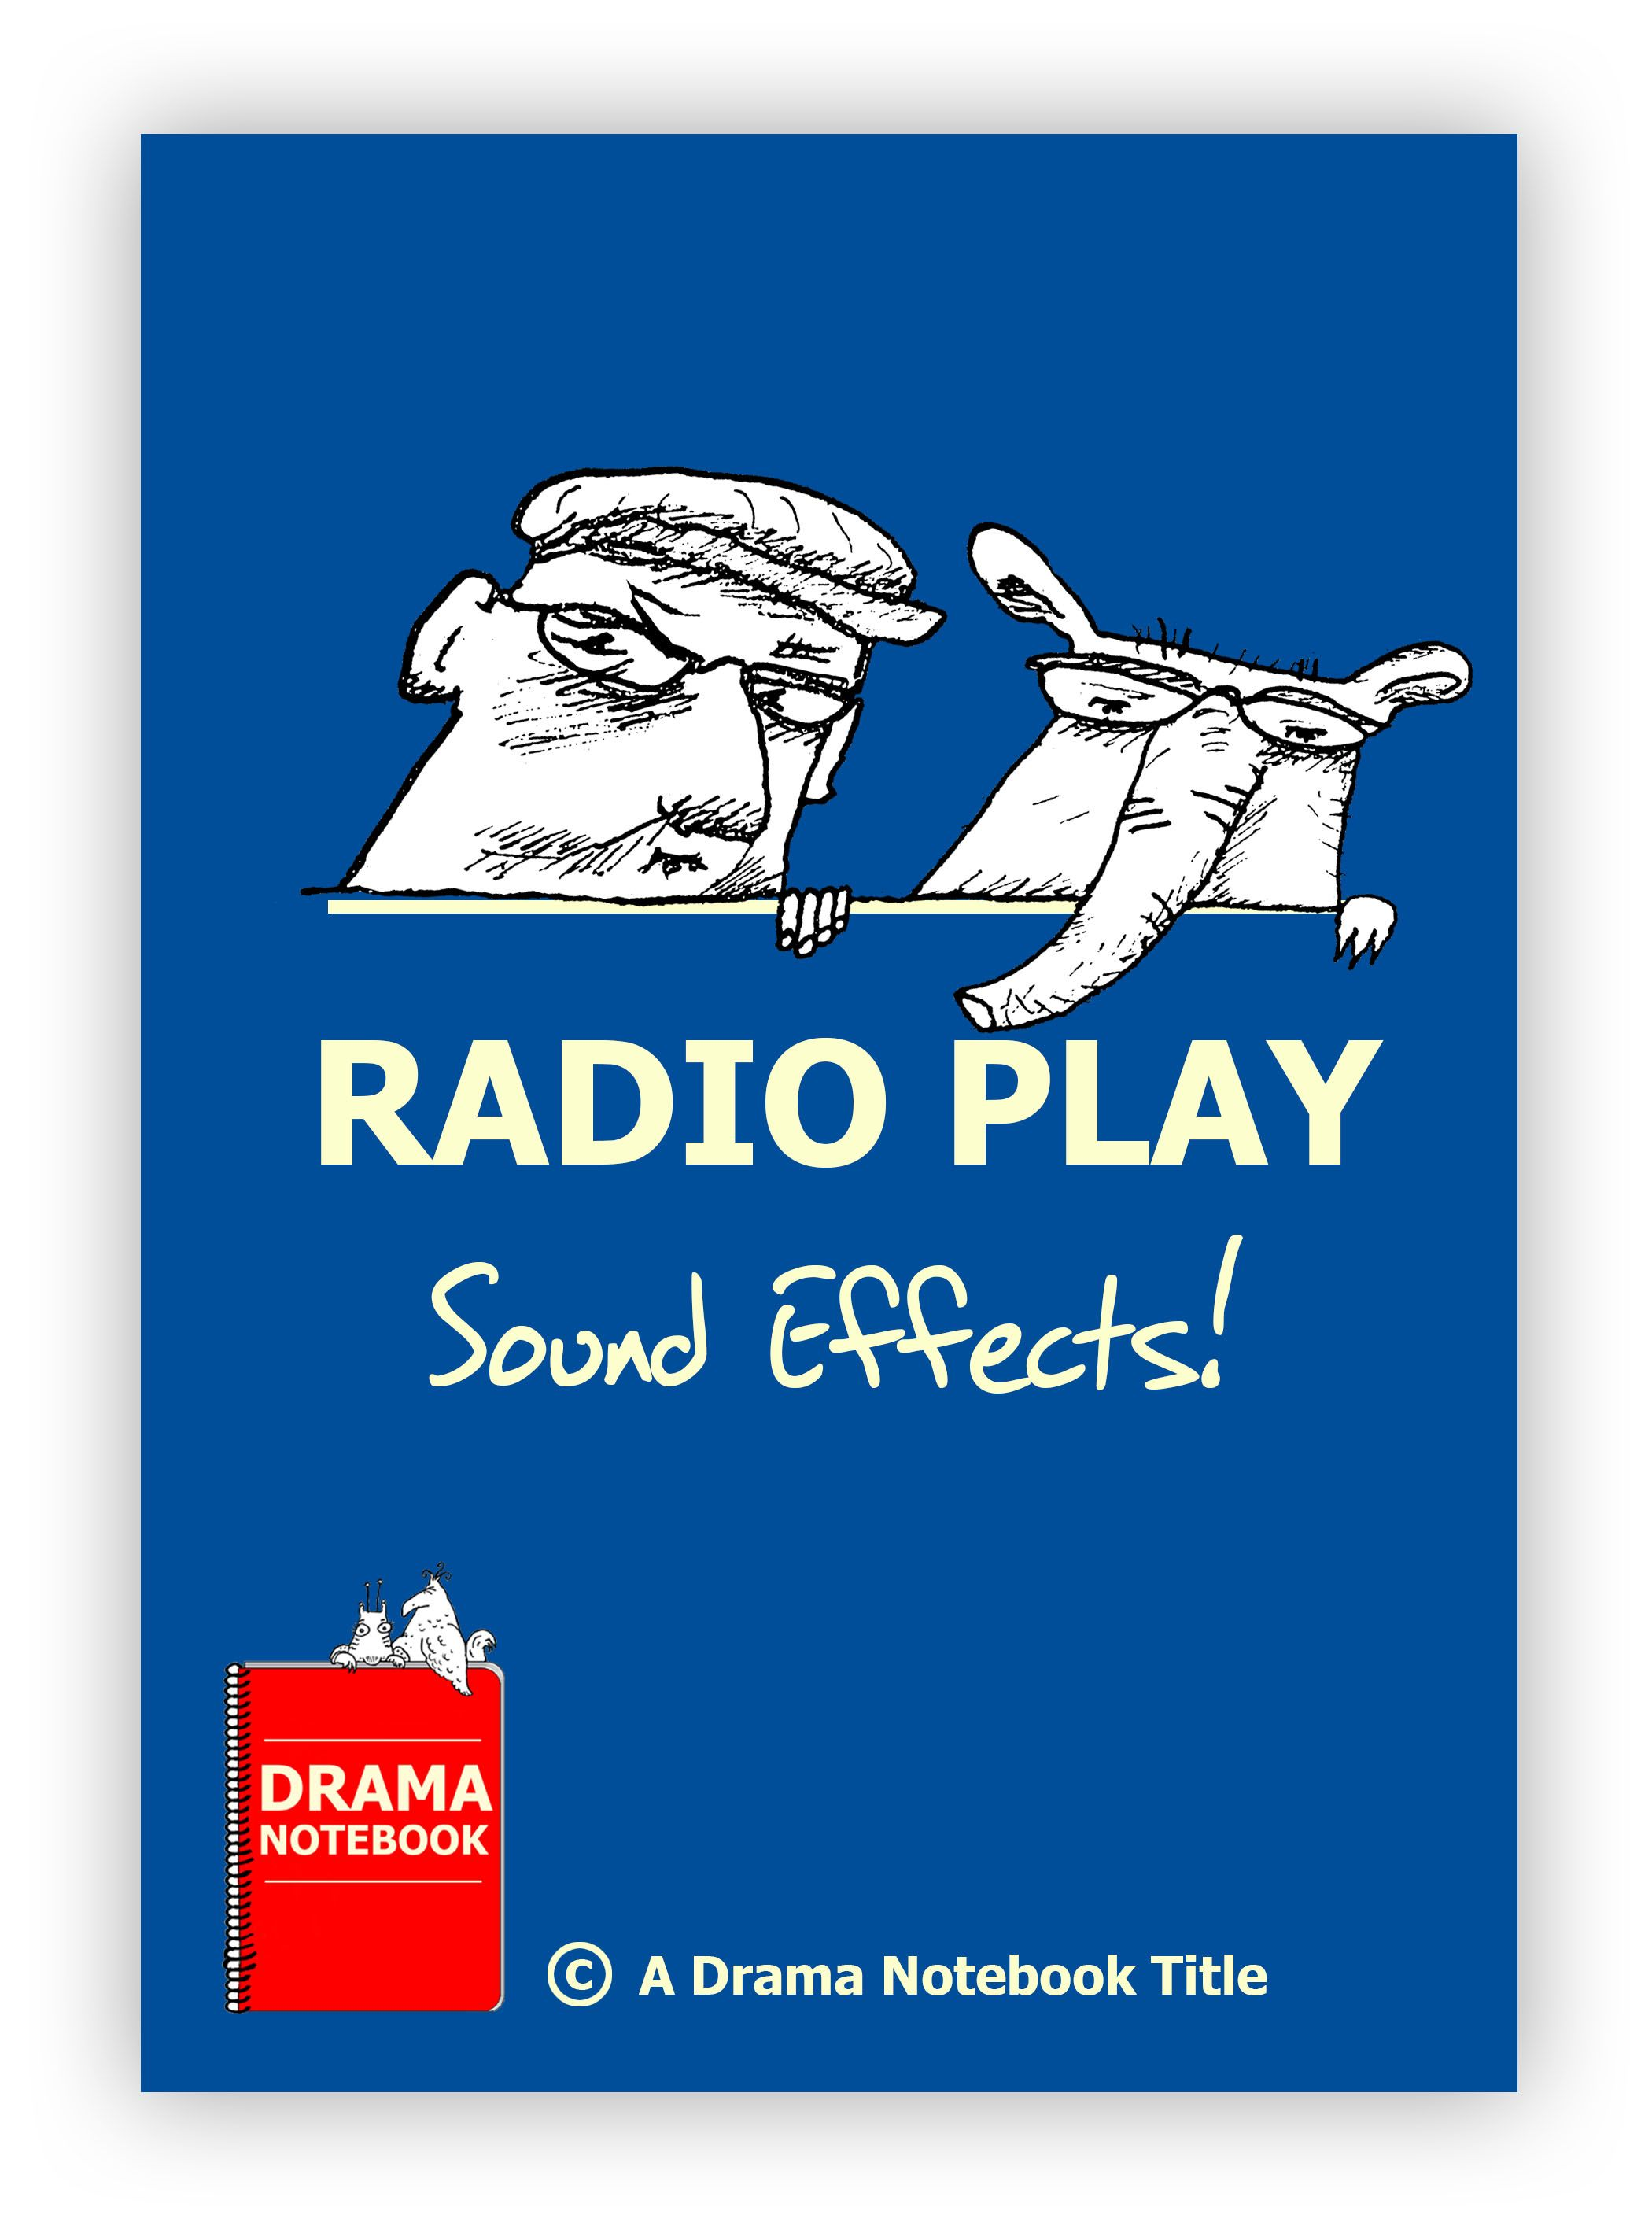 Radio plays sound effects for drama class for highschool